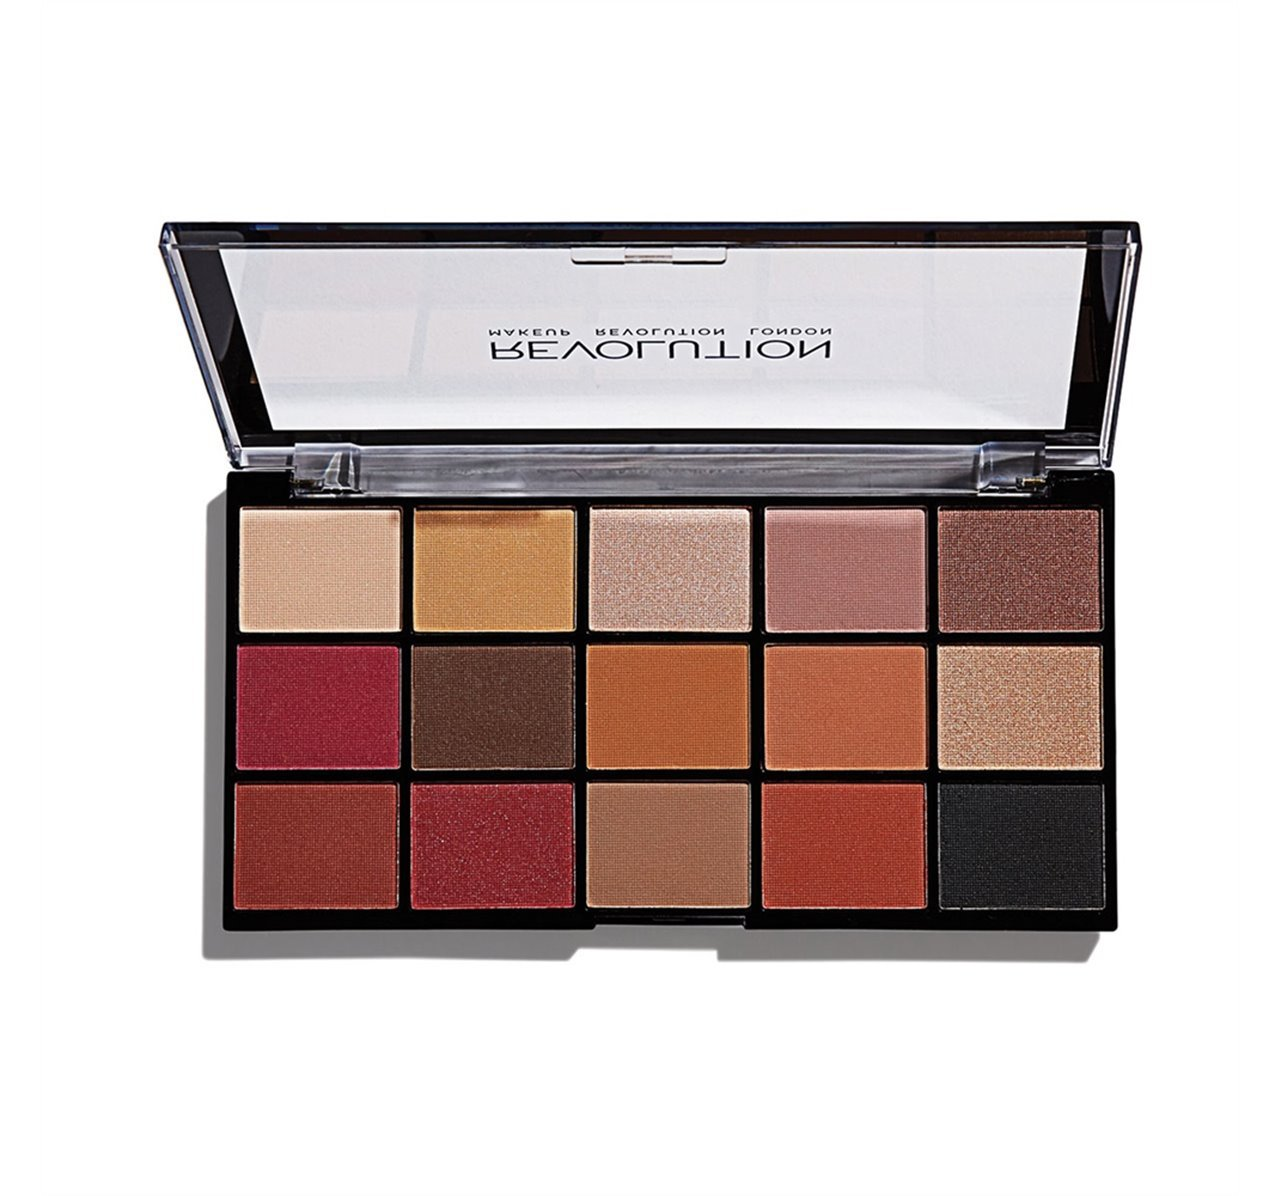 Akių šešėlių paletė Makeup Revolution Re-Loaded Palette Iconic Vitality 16.5 g